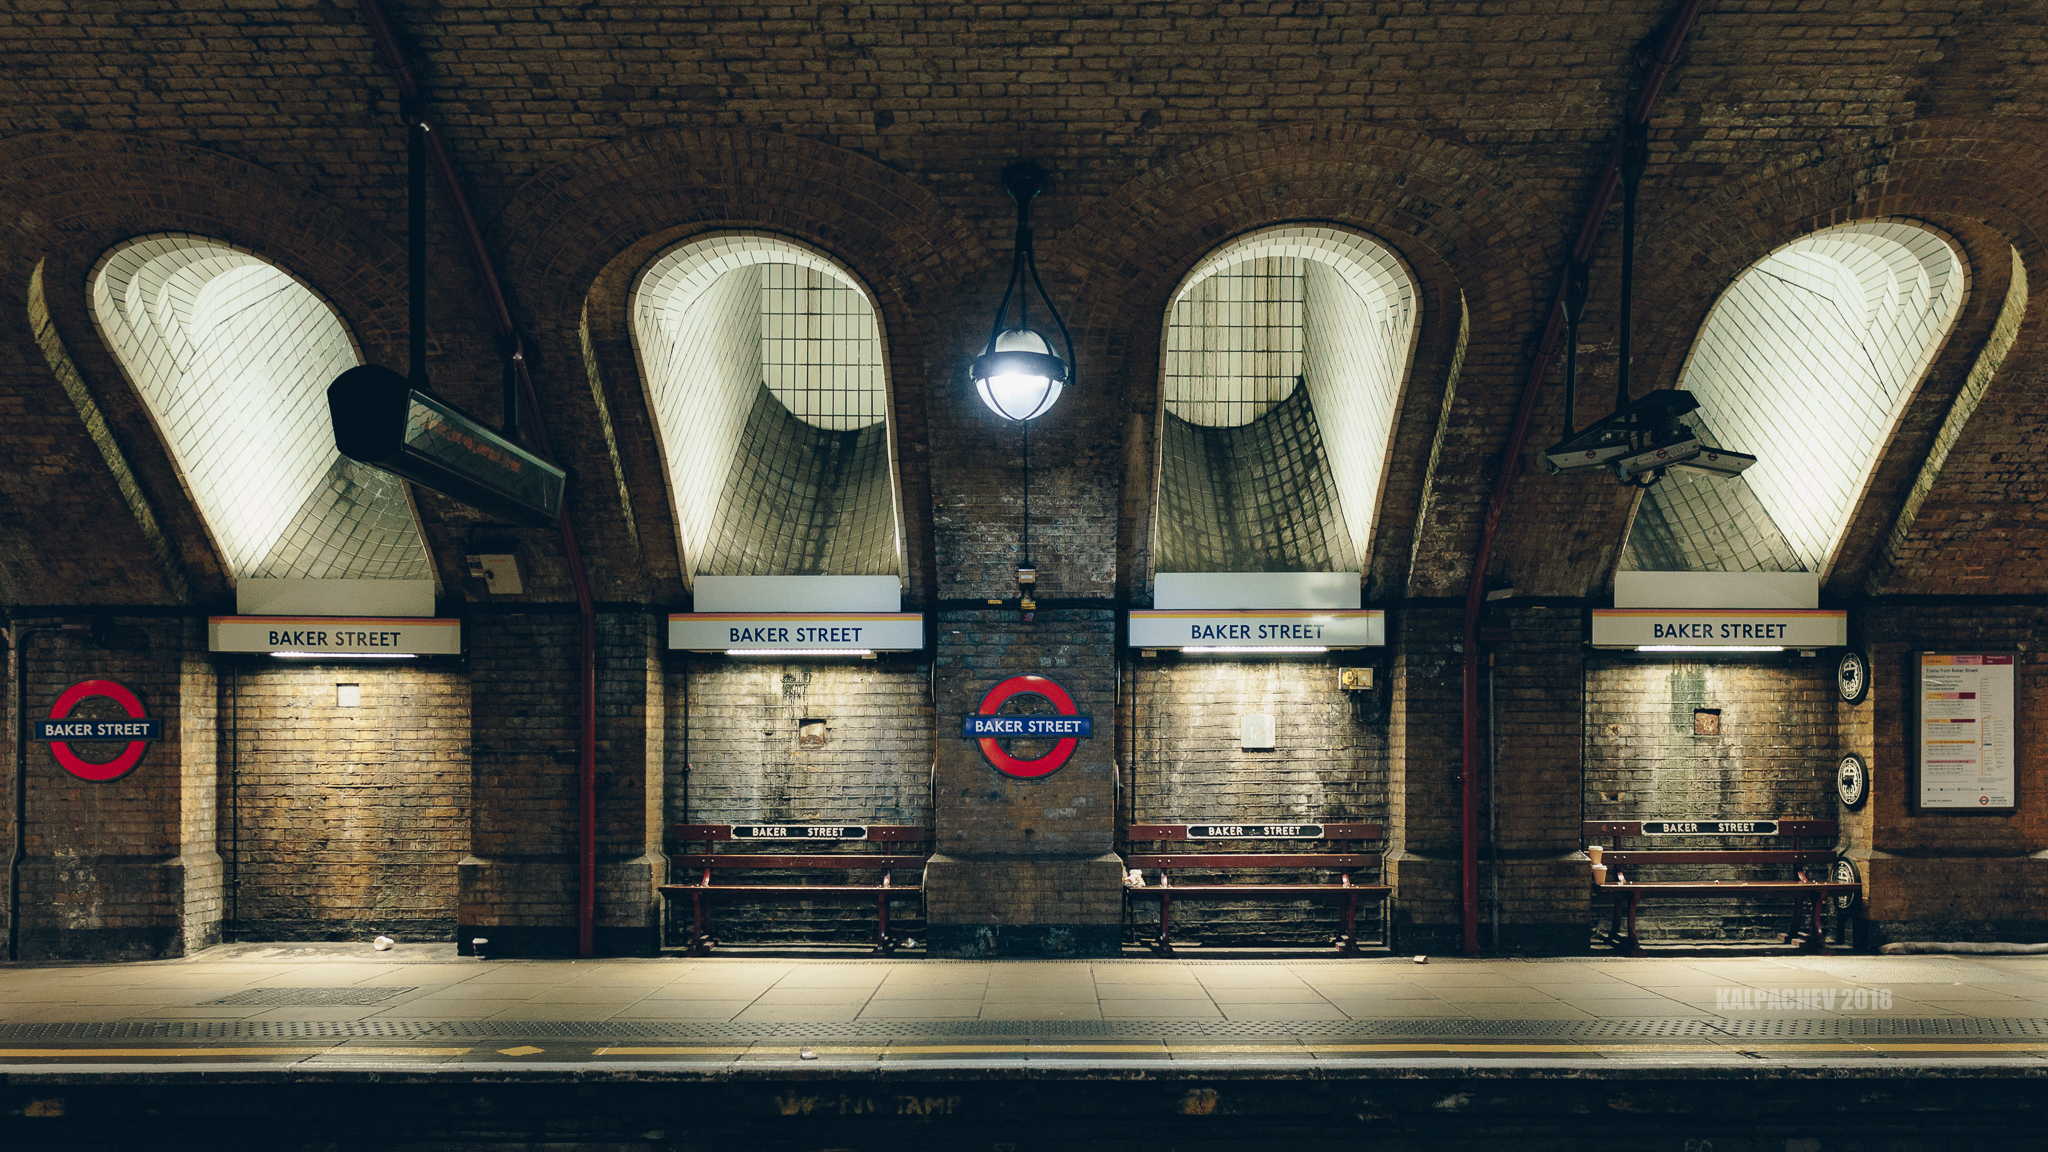 Baker Street station with Sigma 16mm F/1.4